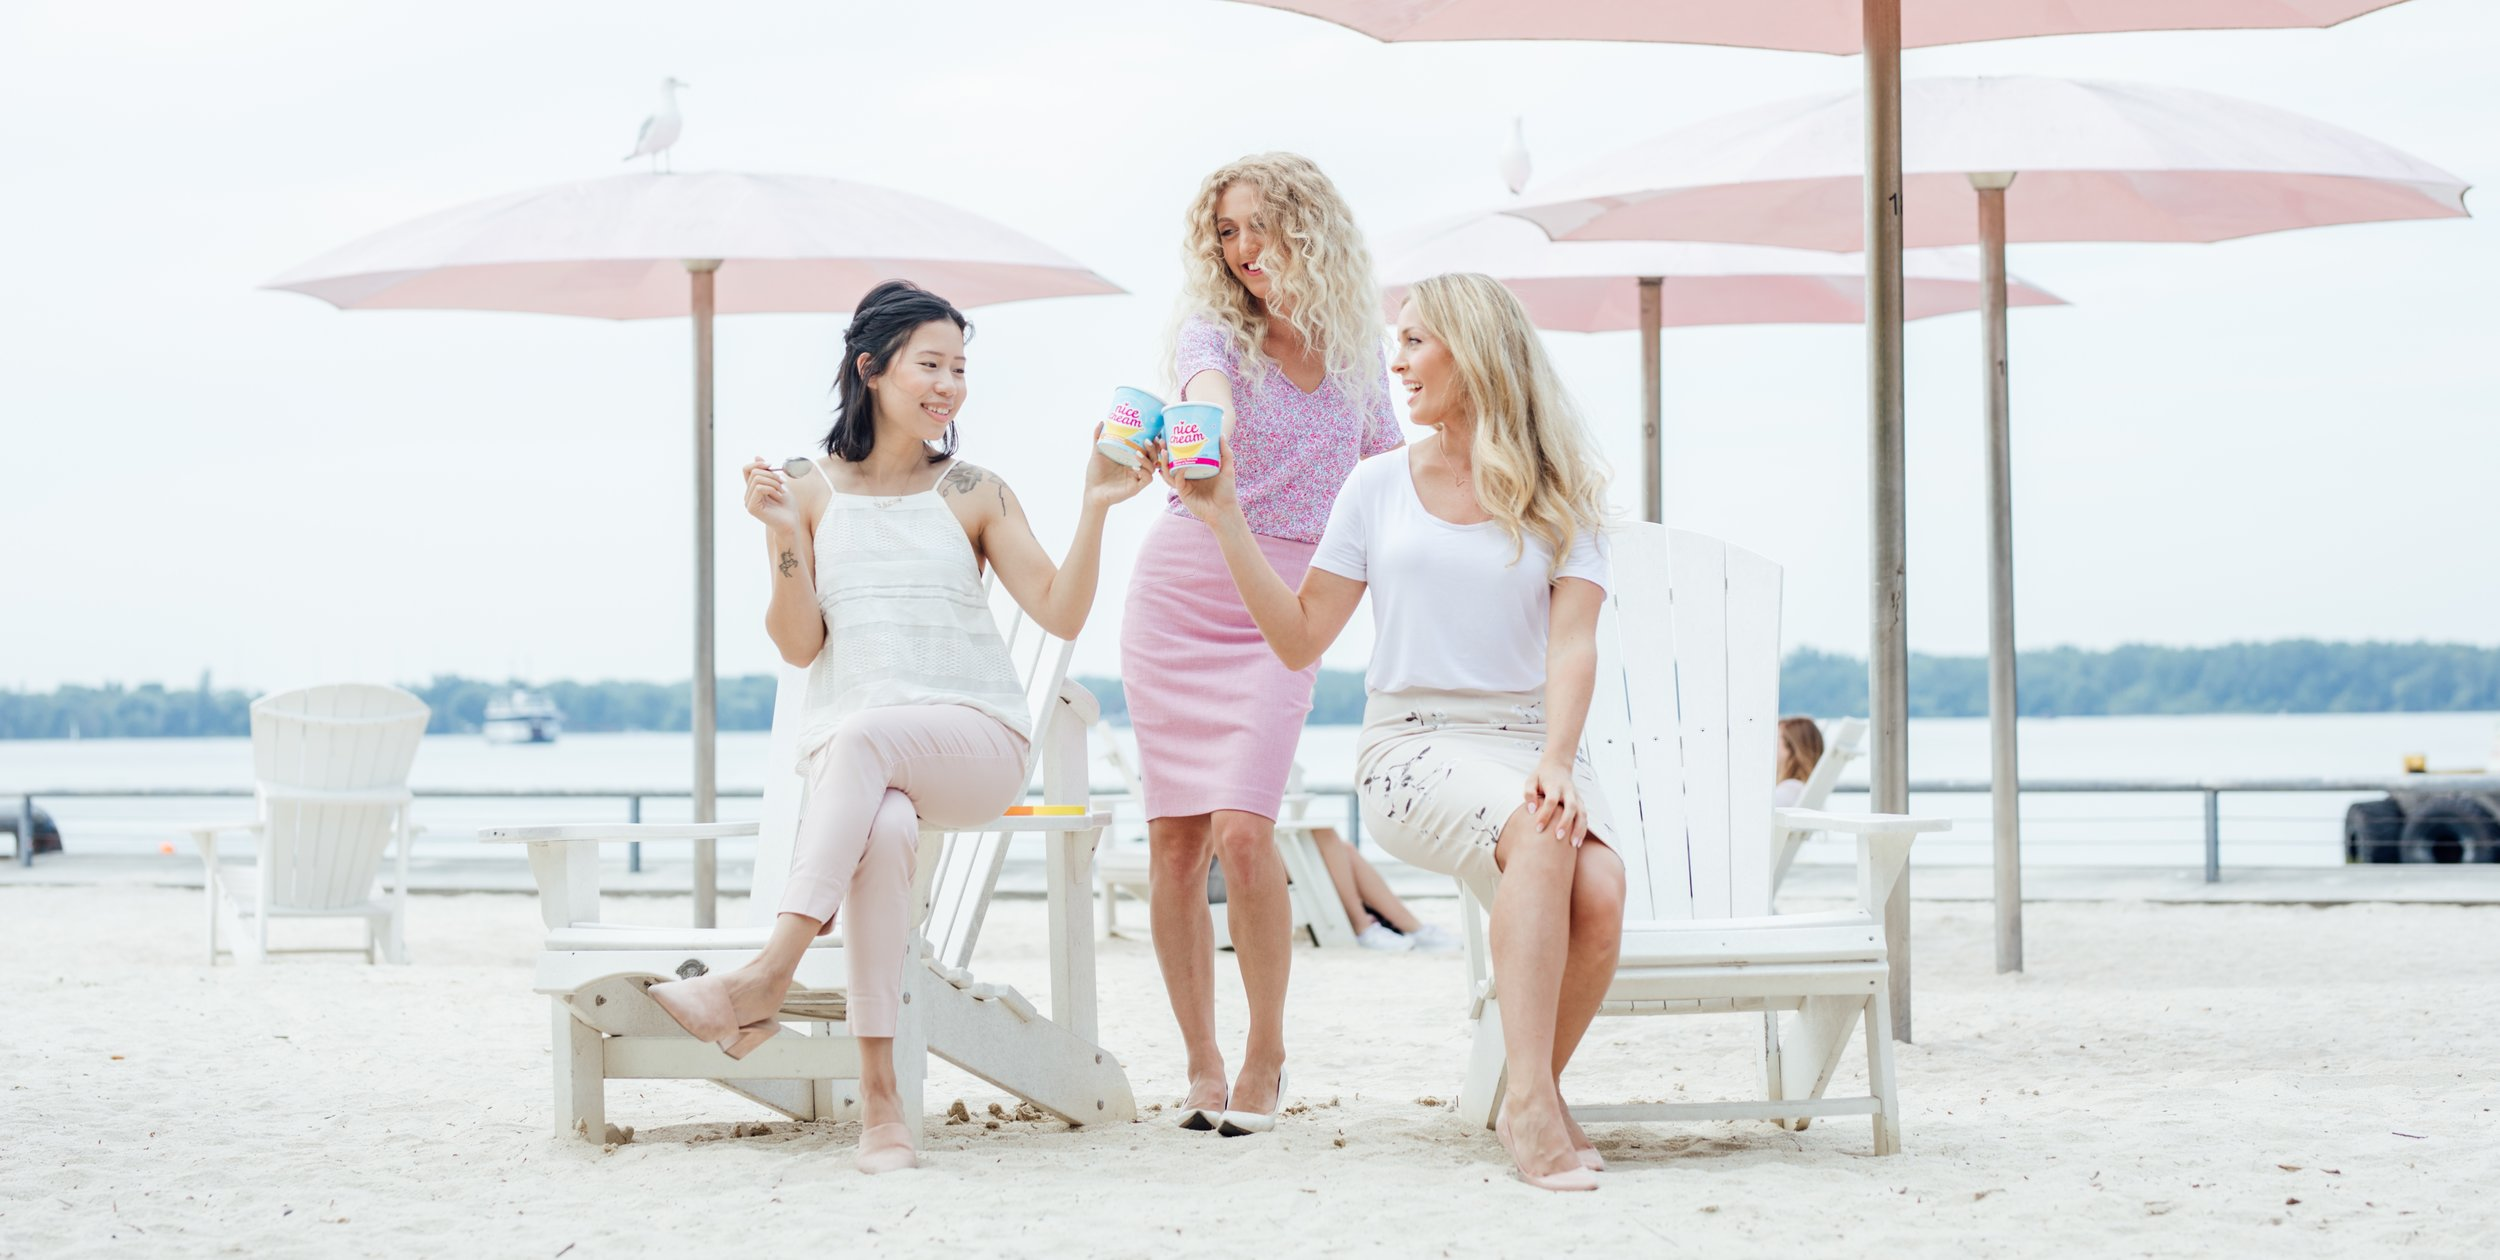 The team behind Chimp Treats: (left to right) Whitney, Brooke and Jillian.